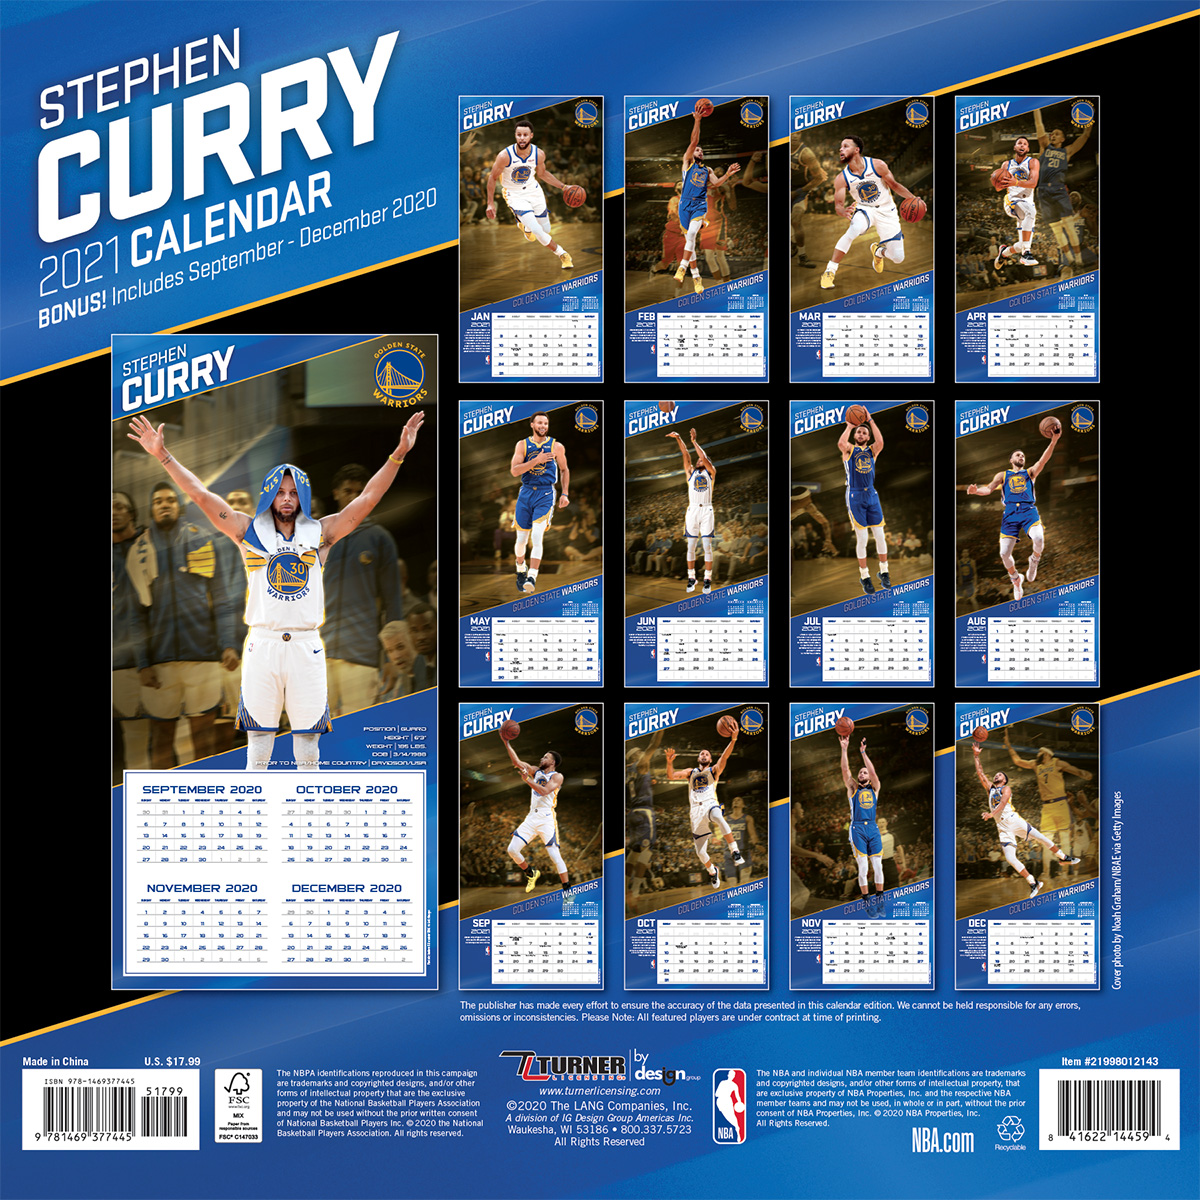 Golden State Warriors Stephen Curry 2019 Wall Calendar - Buy at KHC Sports